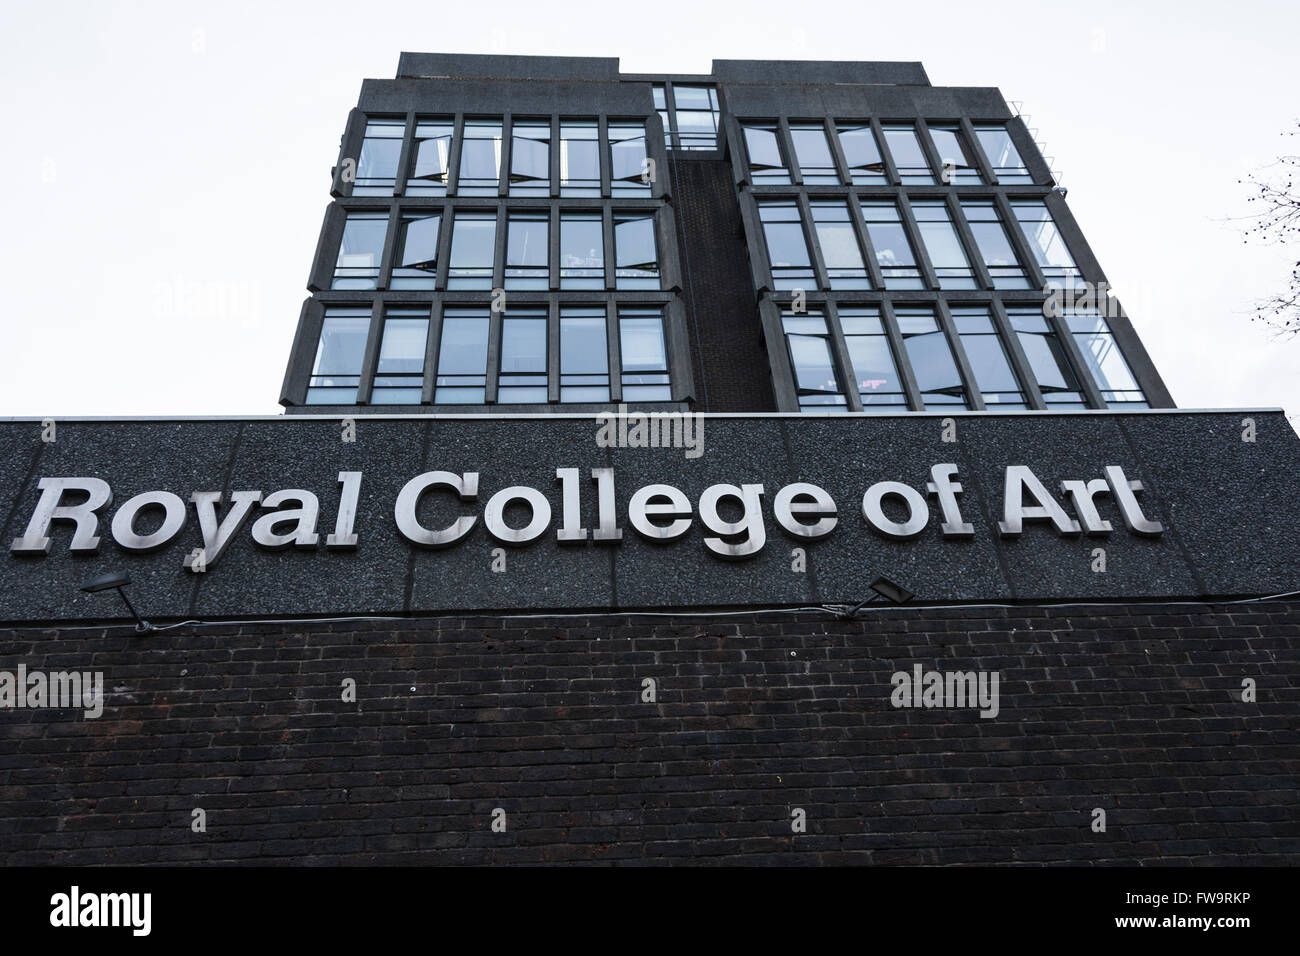 Exterior del Royal College of Art, puerta de Kensington, Londres, Reino Unido. Foto de stock